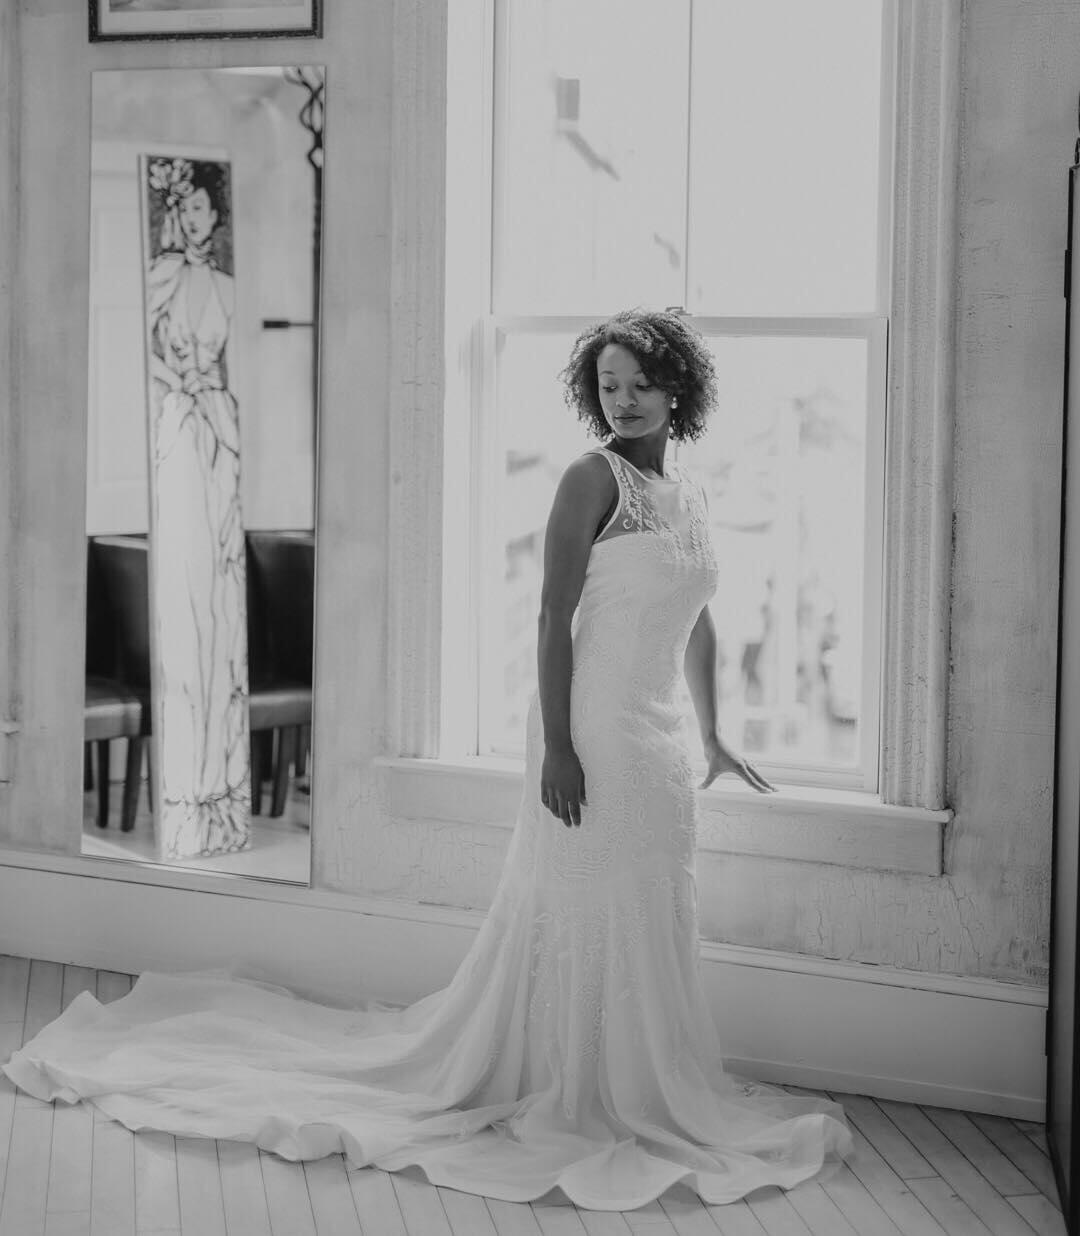 diverse black and white photo of woman in wedding dress posing by window